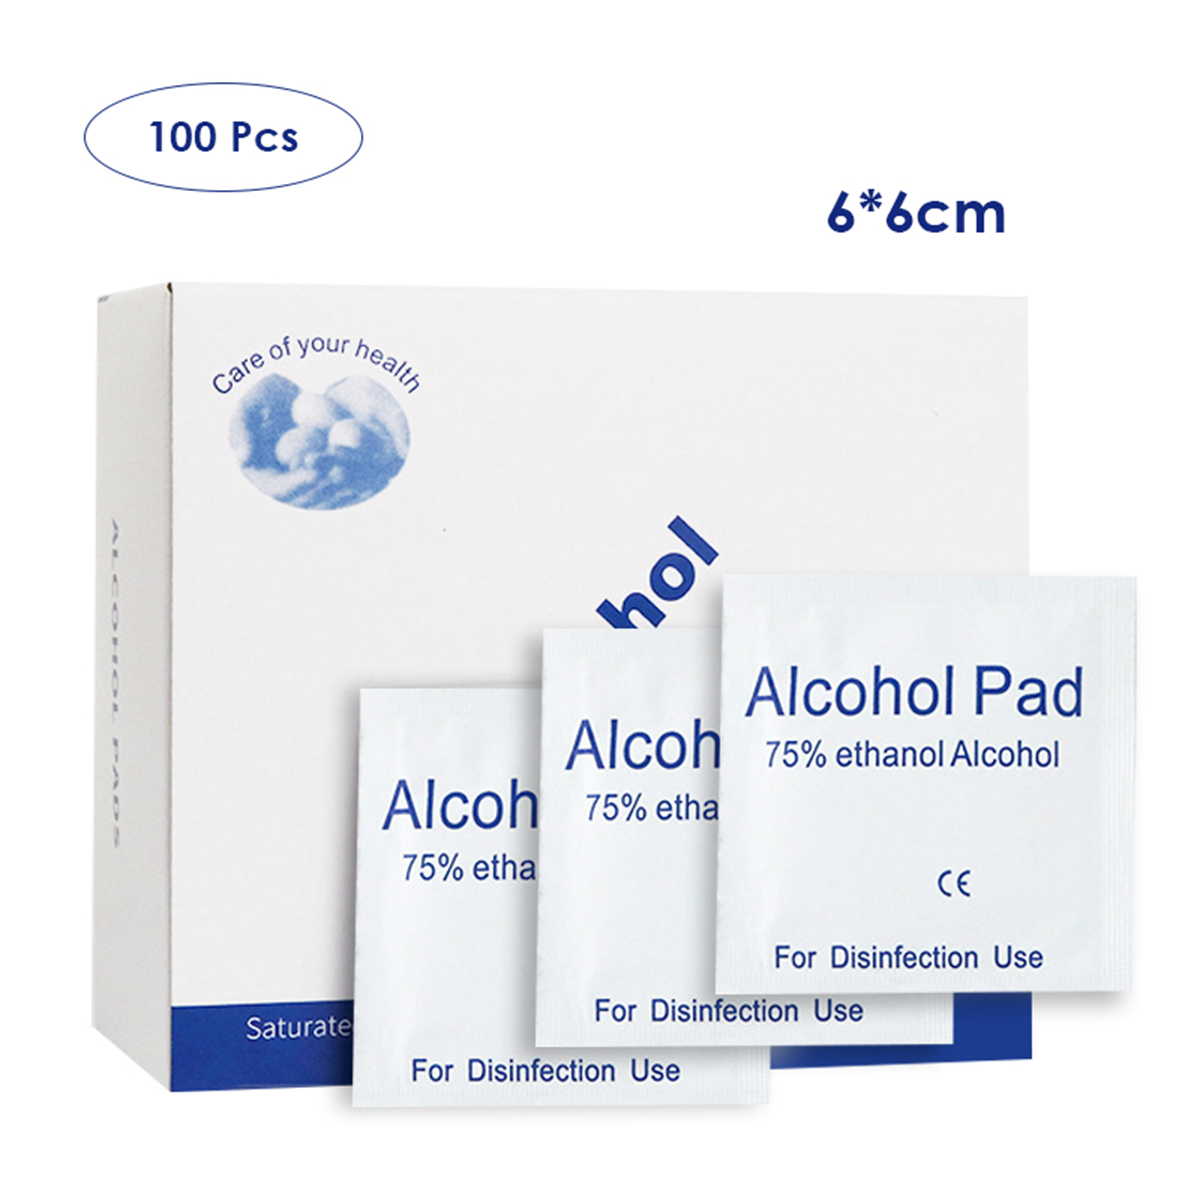 100pcs Alcohol Wipes 75% Isopropyl Alcohol Prep Pad For Mobile Phone Door Handle Sterilize Wound Mouse Door Handle